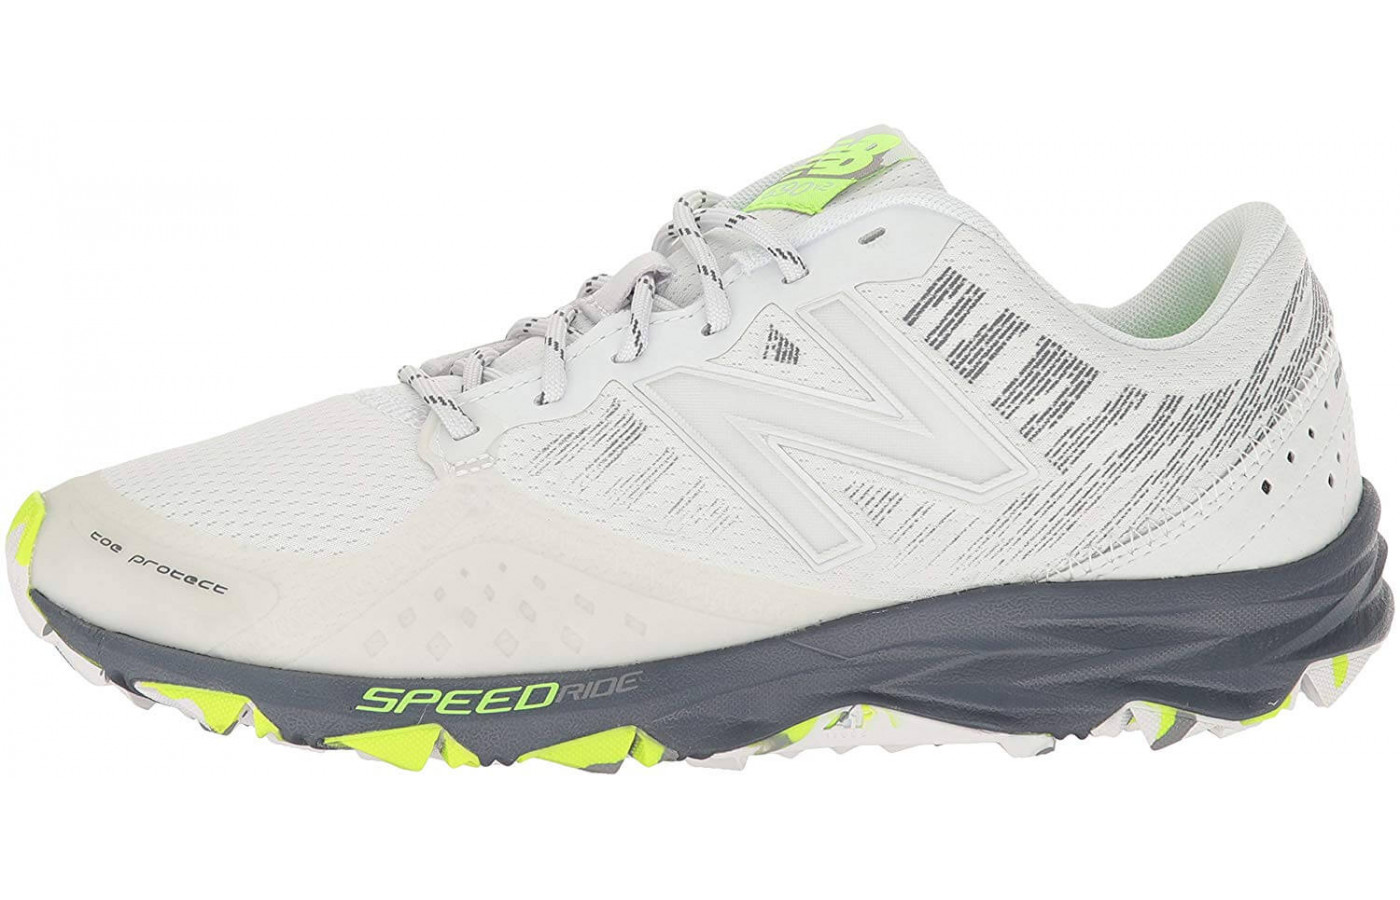 The 690v2 Trail features a synthetic mesh upper